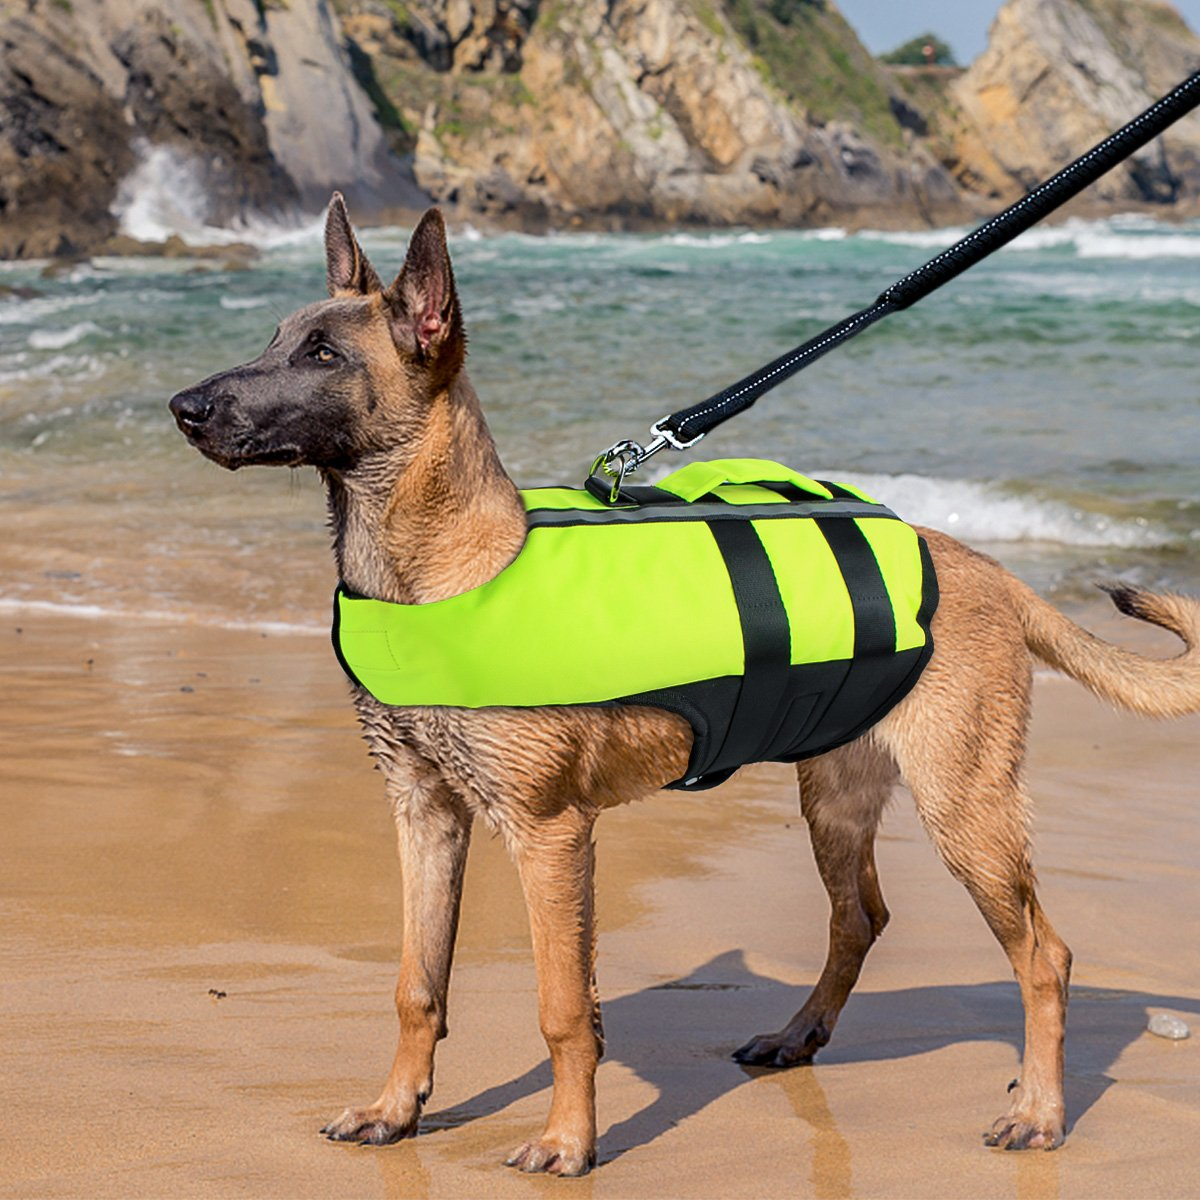 Namsan Dog Life Jacket - Folding Dog Life Vest,Portable Airbag Dog Swimming Jacket Vest,Green,Large